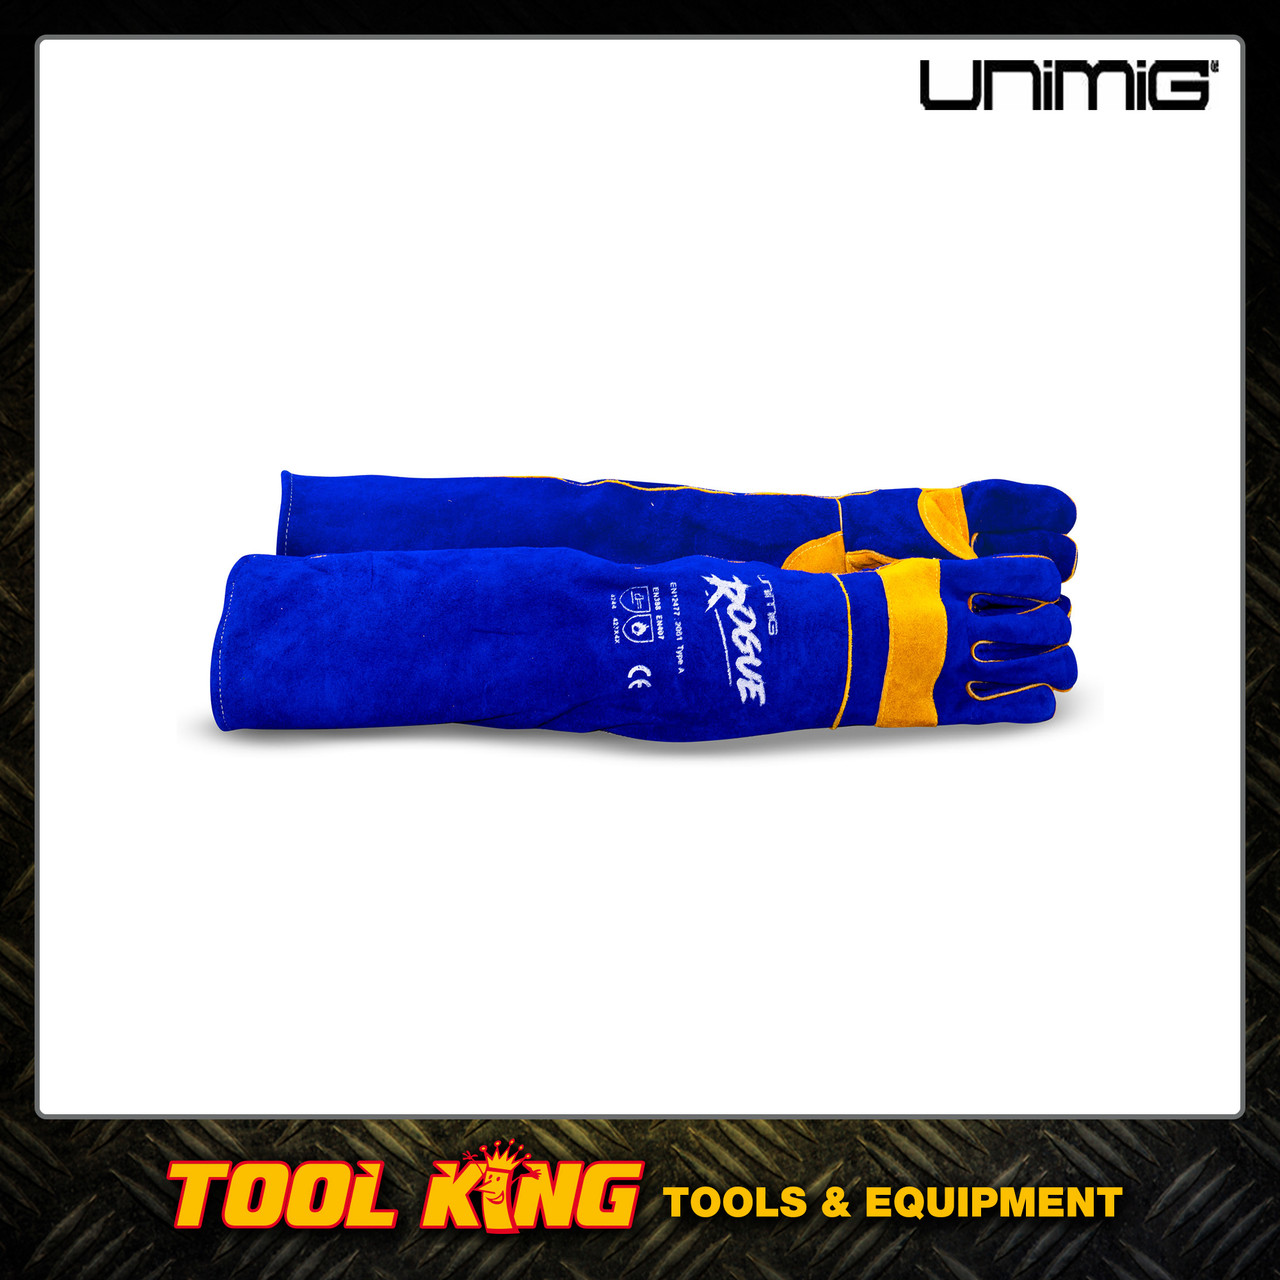 Extra long Welders Gloves UNIMIG Rogue